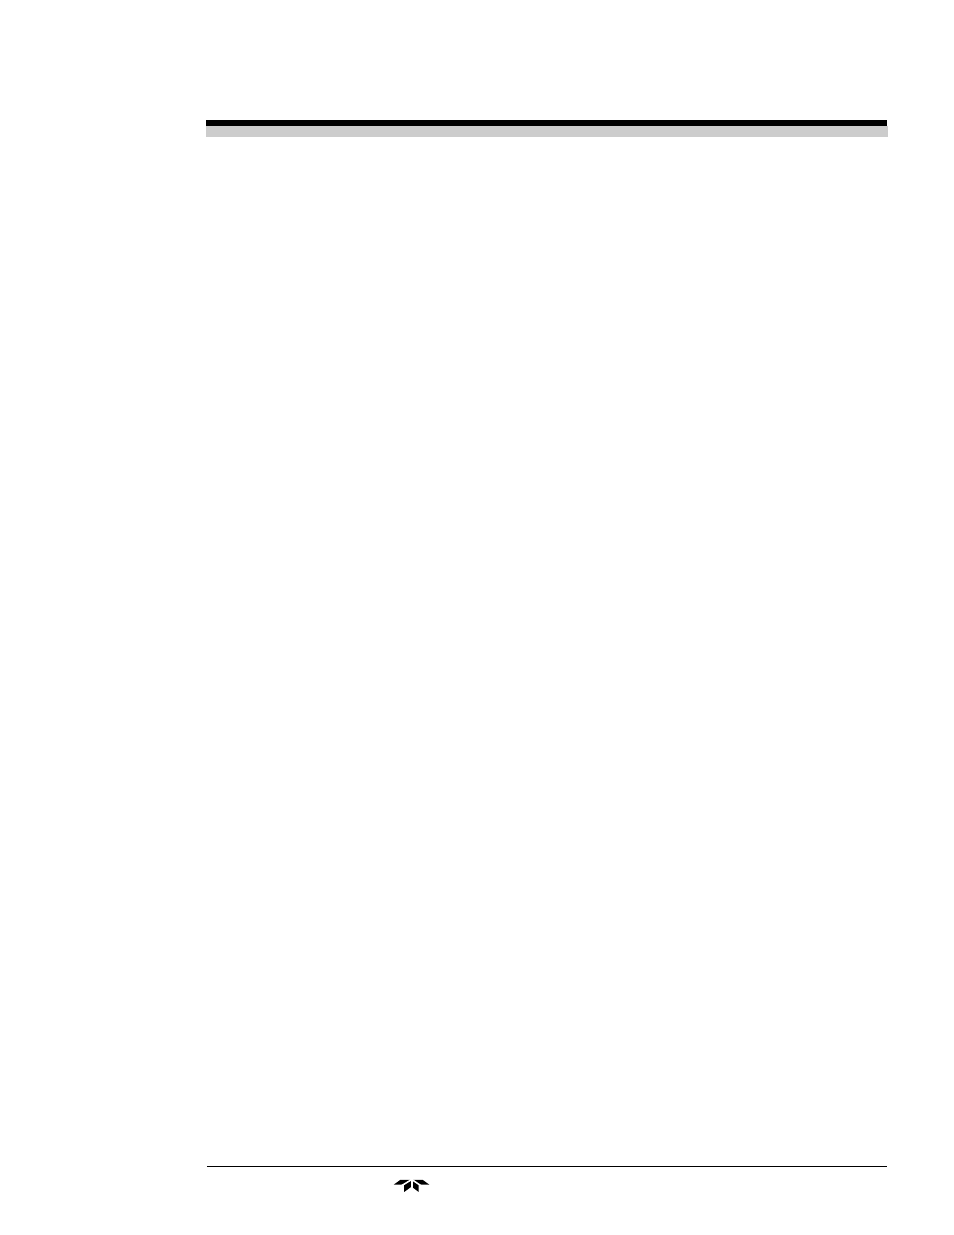 hight resolution of teledyne 3010mb split architecture paramagnetic oxygen analyzer user manual page 67 70